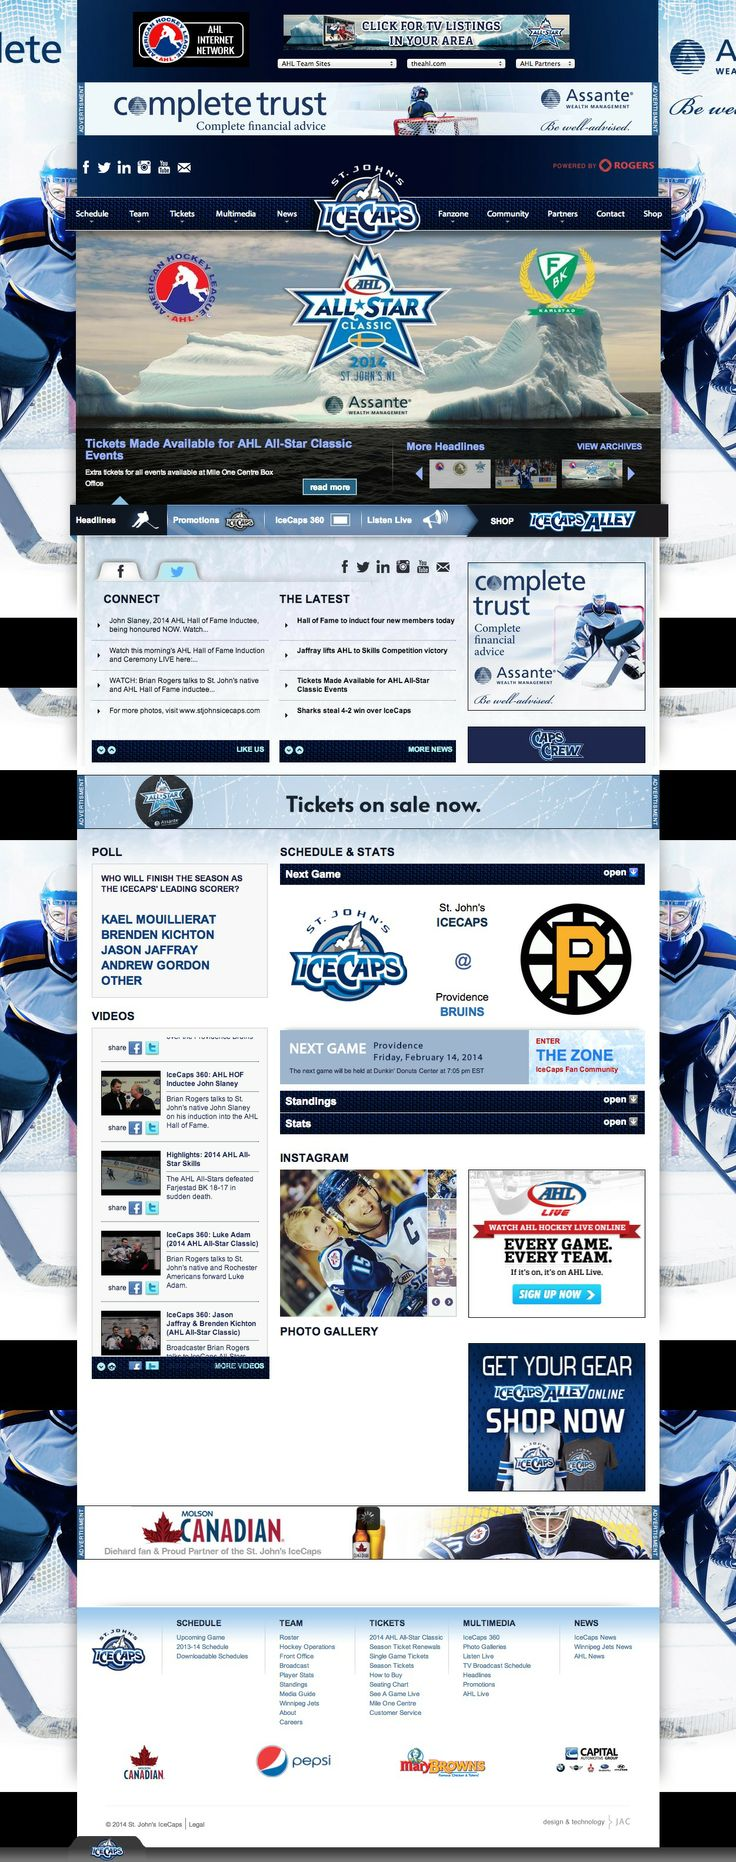 St. John's IceCaps website  #Hockey #StJohns #IceCaps #AHL